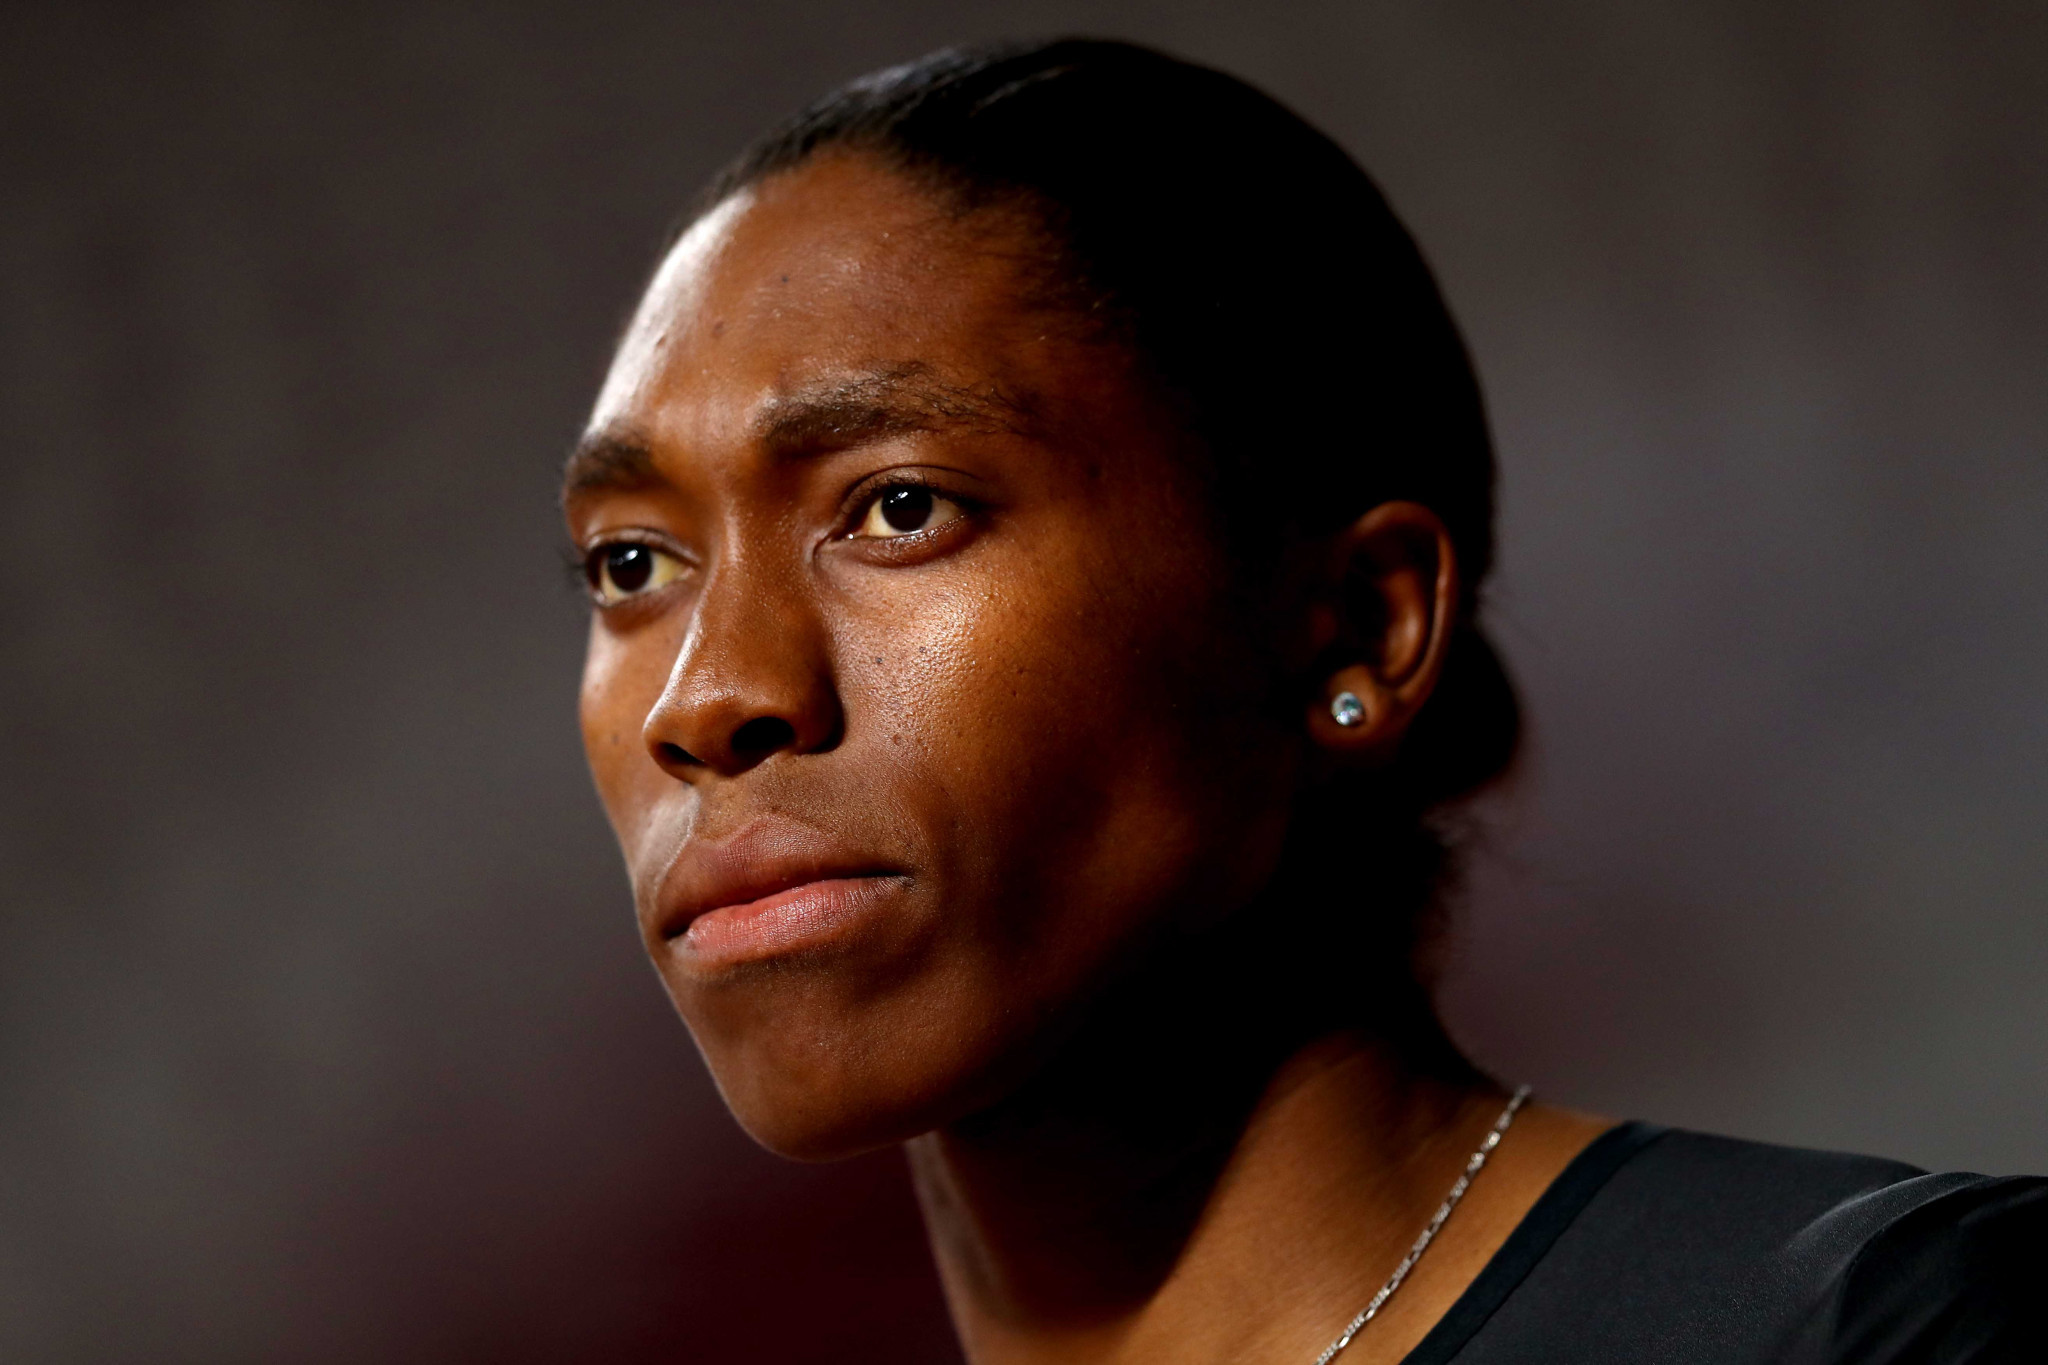 Athletics South Africa to appeal Semenya testosterone ruling